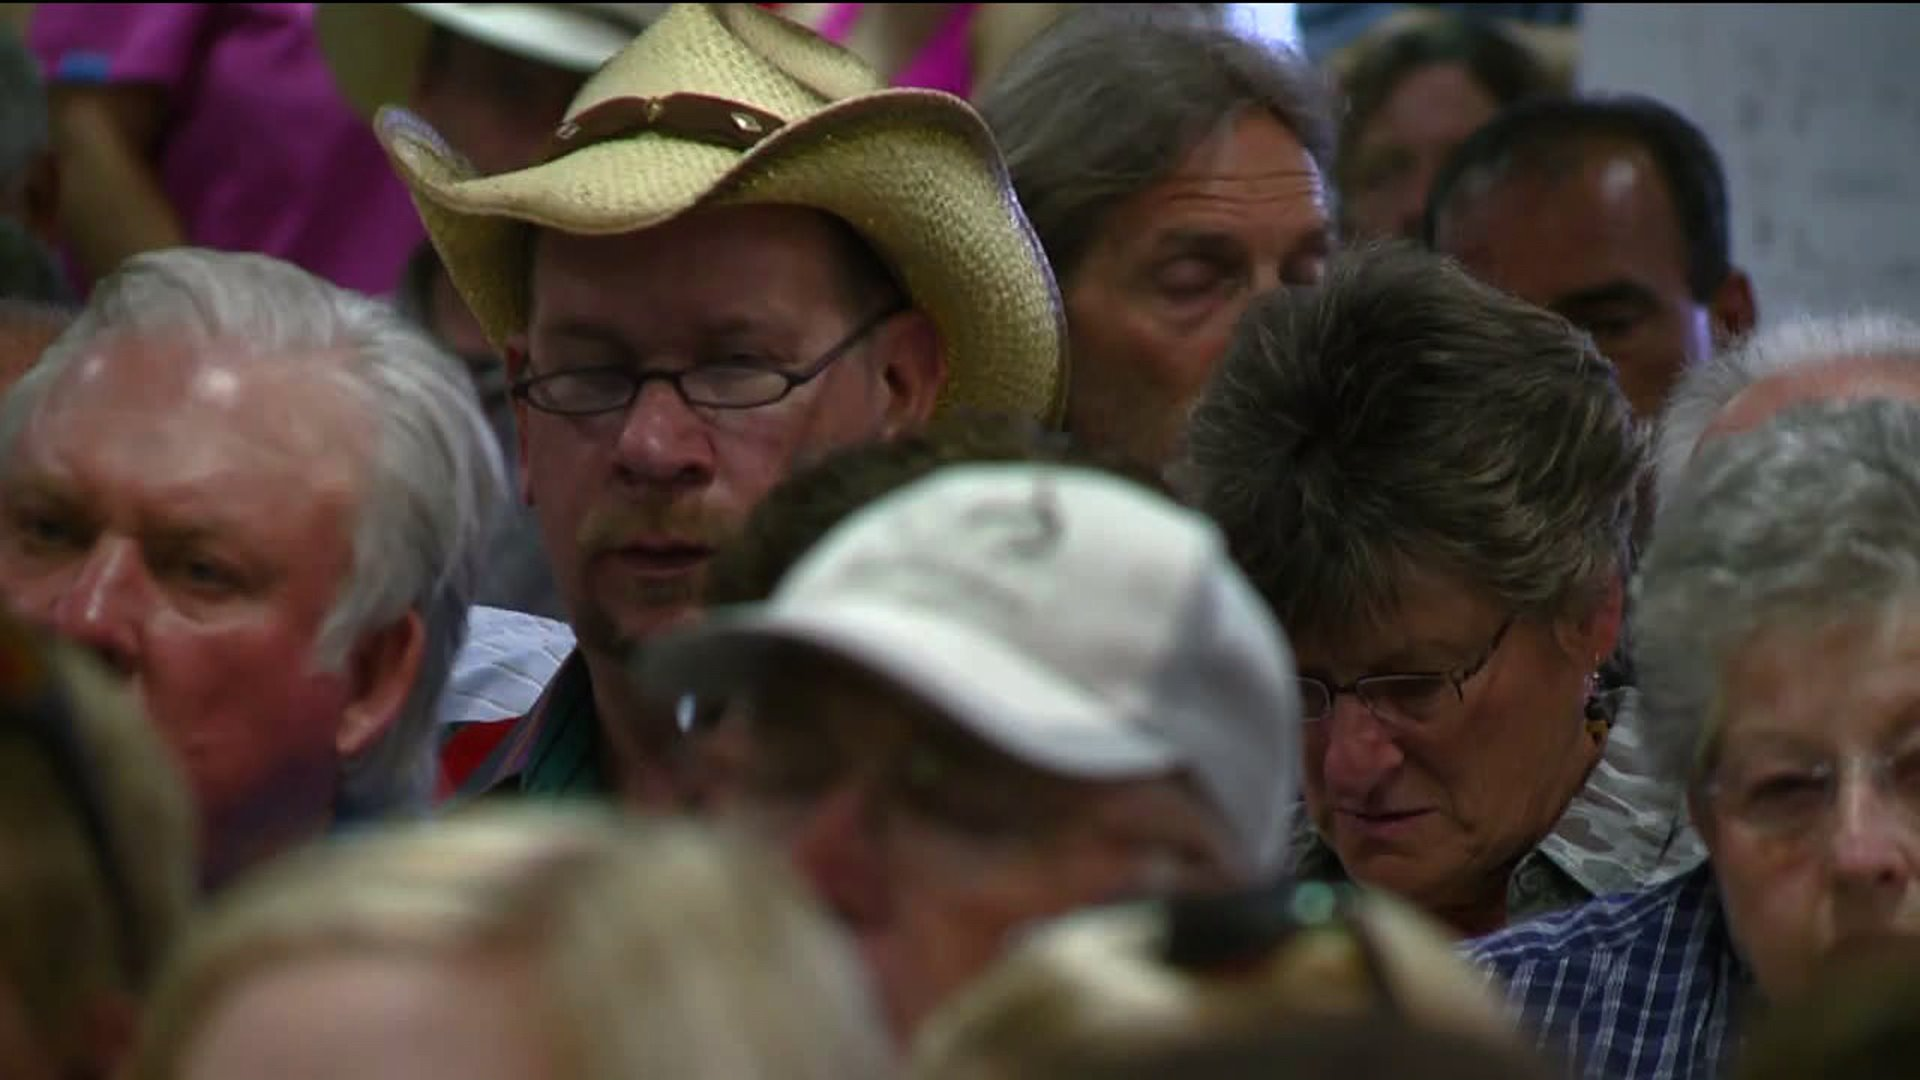 Residents of Byers attend meeting about Riot Fest